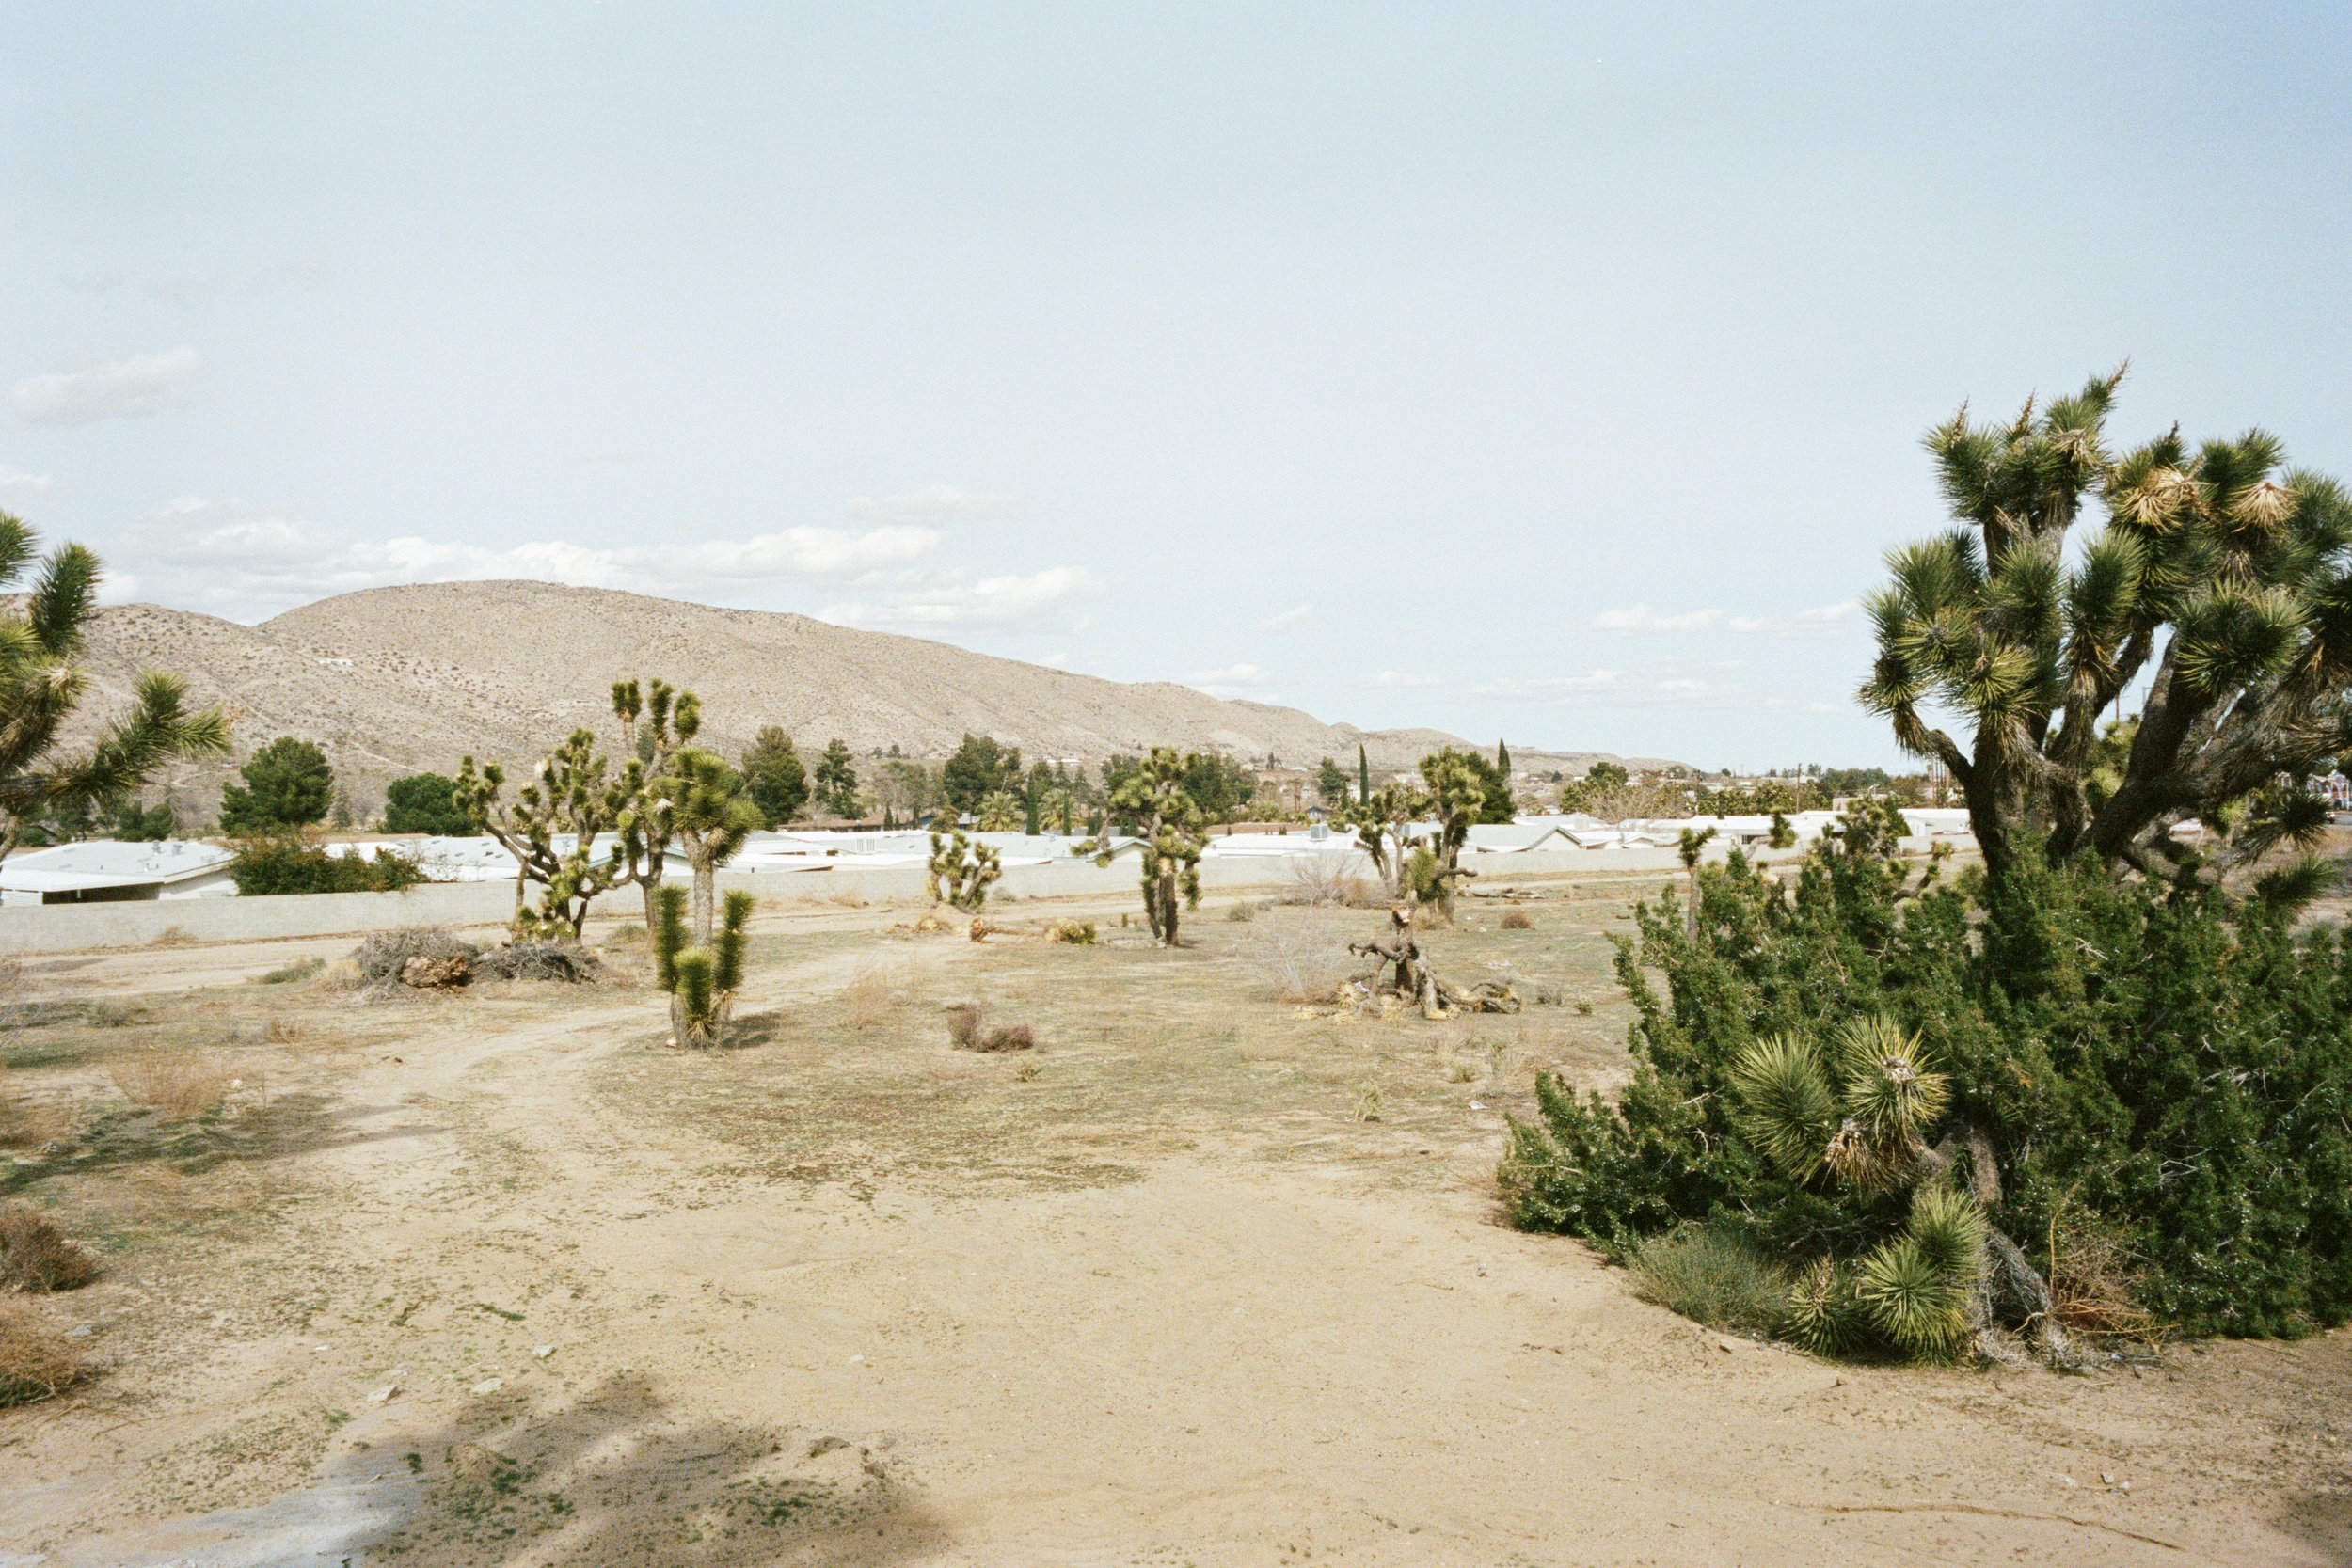 Mobile home park roofline at ground level, CA desert, 2018 - 35mm Portra